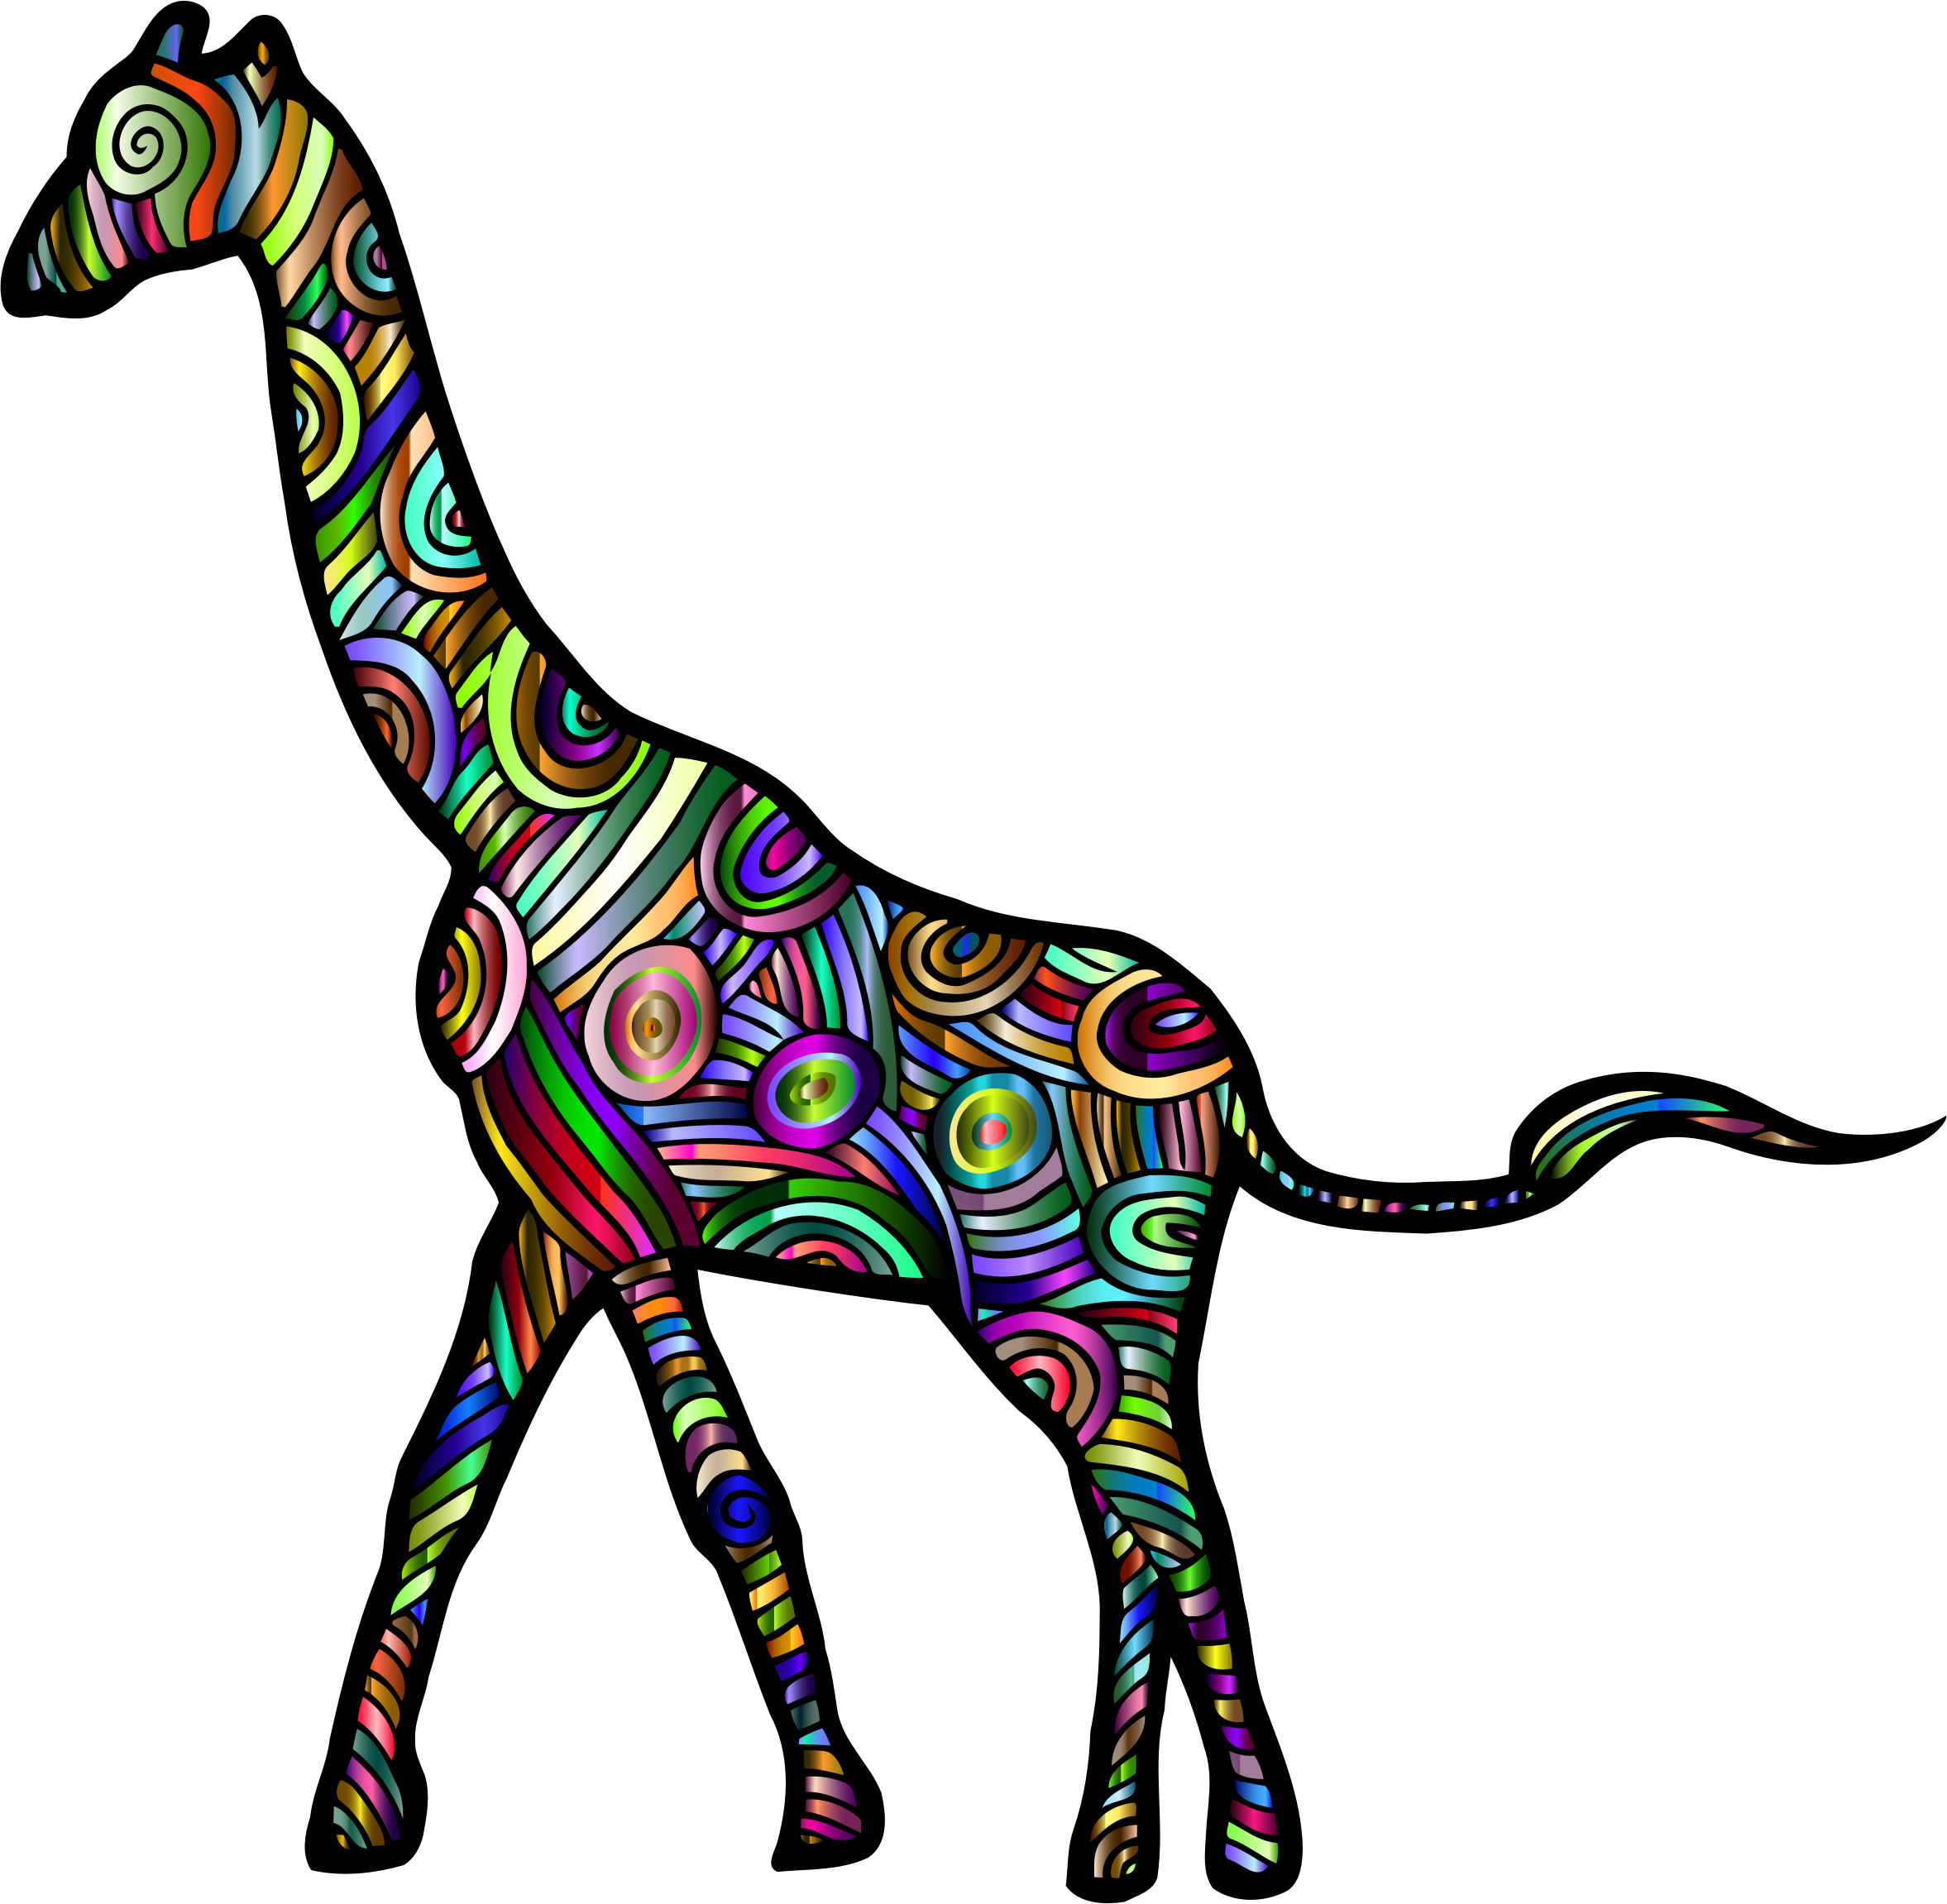 Chromatic Stylized Giraffe 2 by GDJ